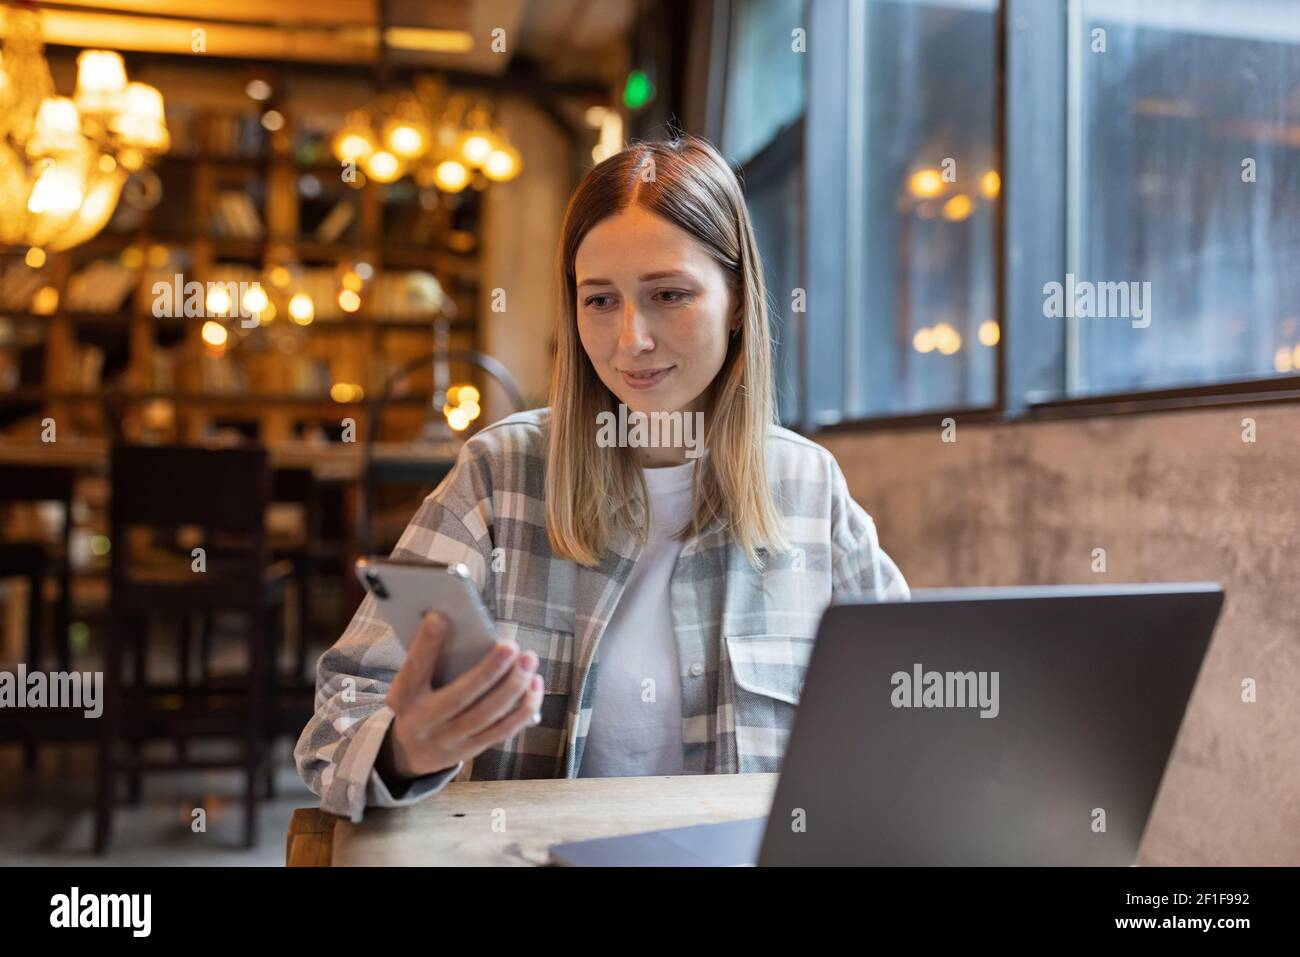 Young Caucasian business woman with blonde hair working on laptop in cafe. College student using technology , online education, freelance  Stock Photo